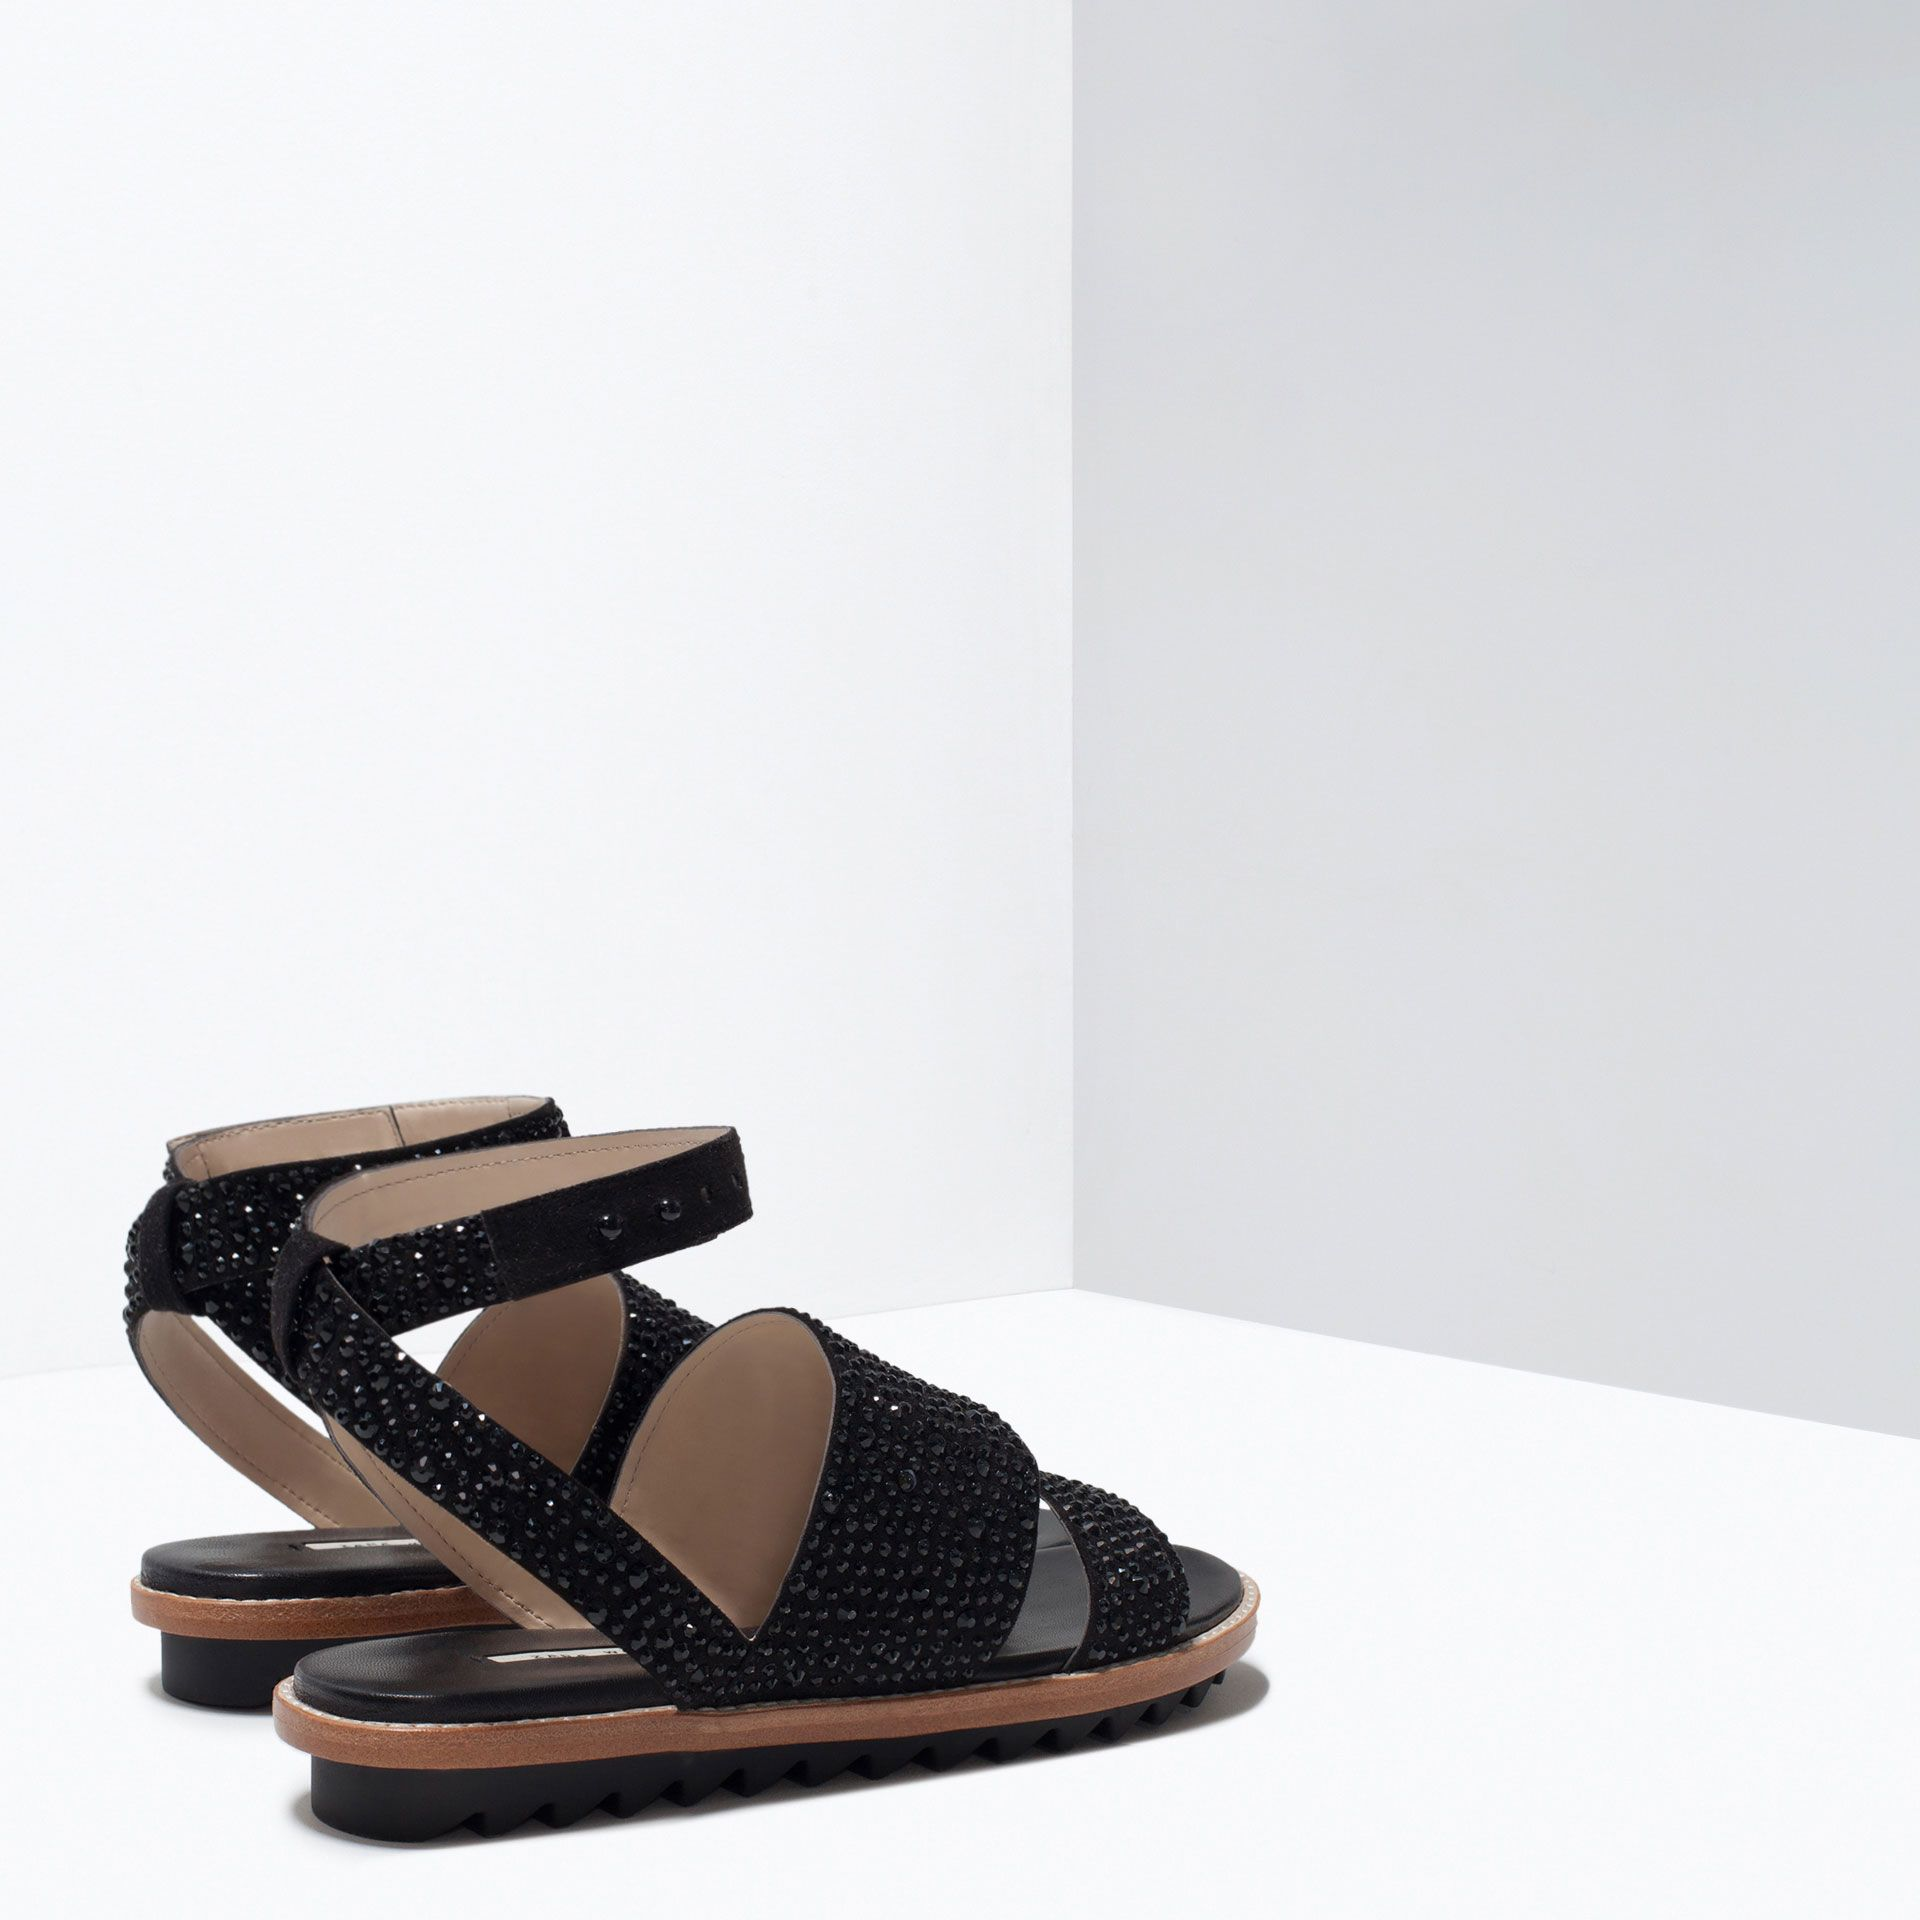 ZARA - WOMAN - FLAT SANDALS WITH SHINY DETAILS